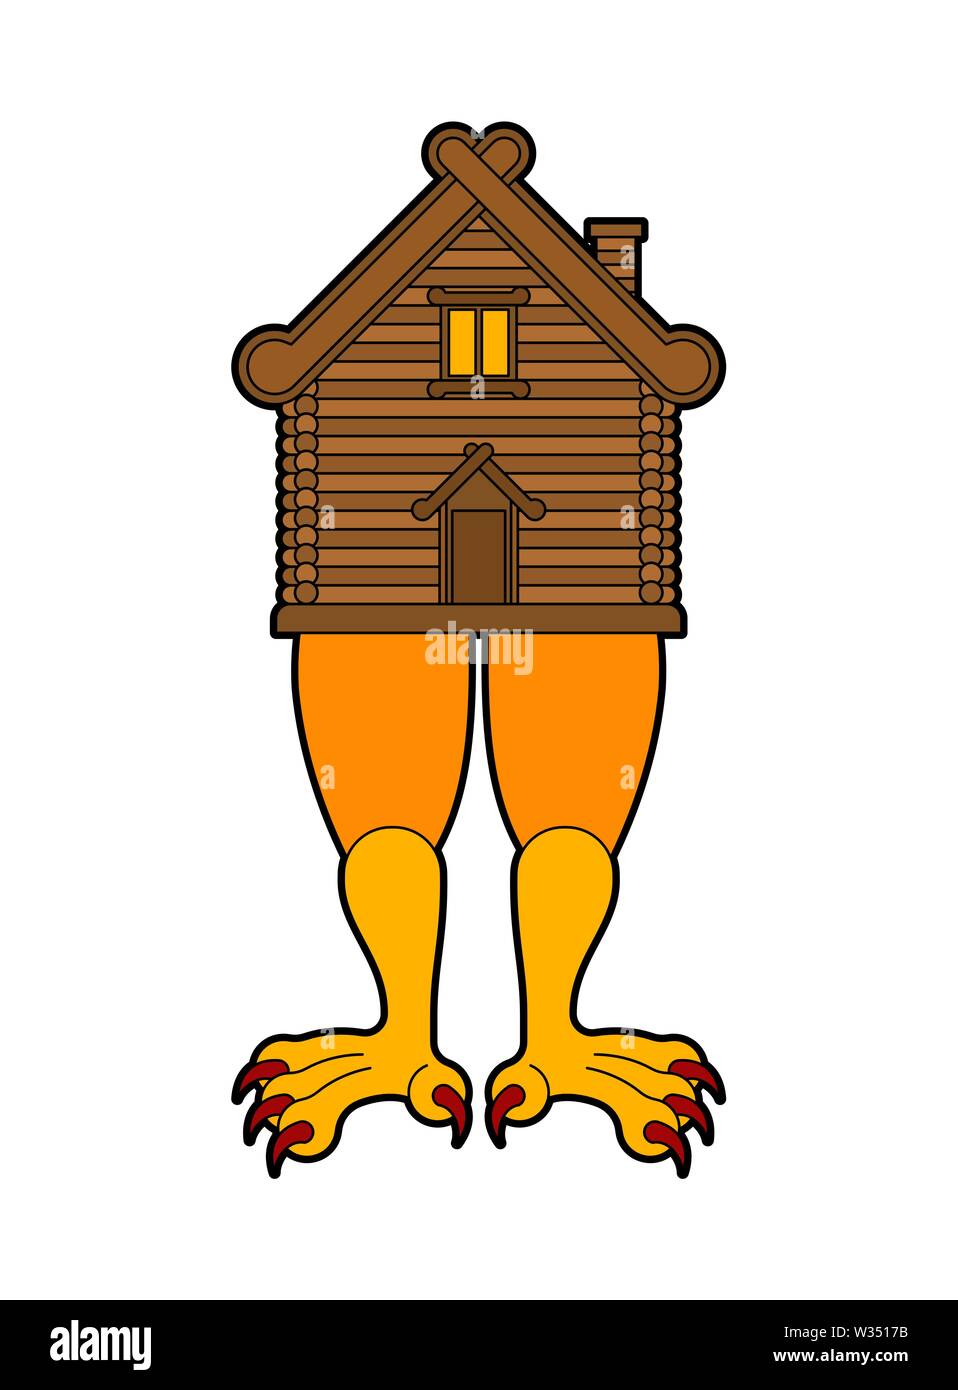 Hut on chicken legs. Russian traditional wood home. Baba Yaga house - Stock Image